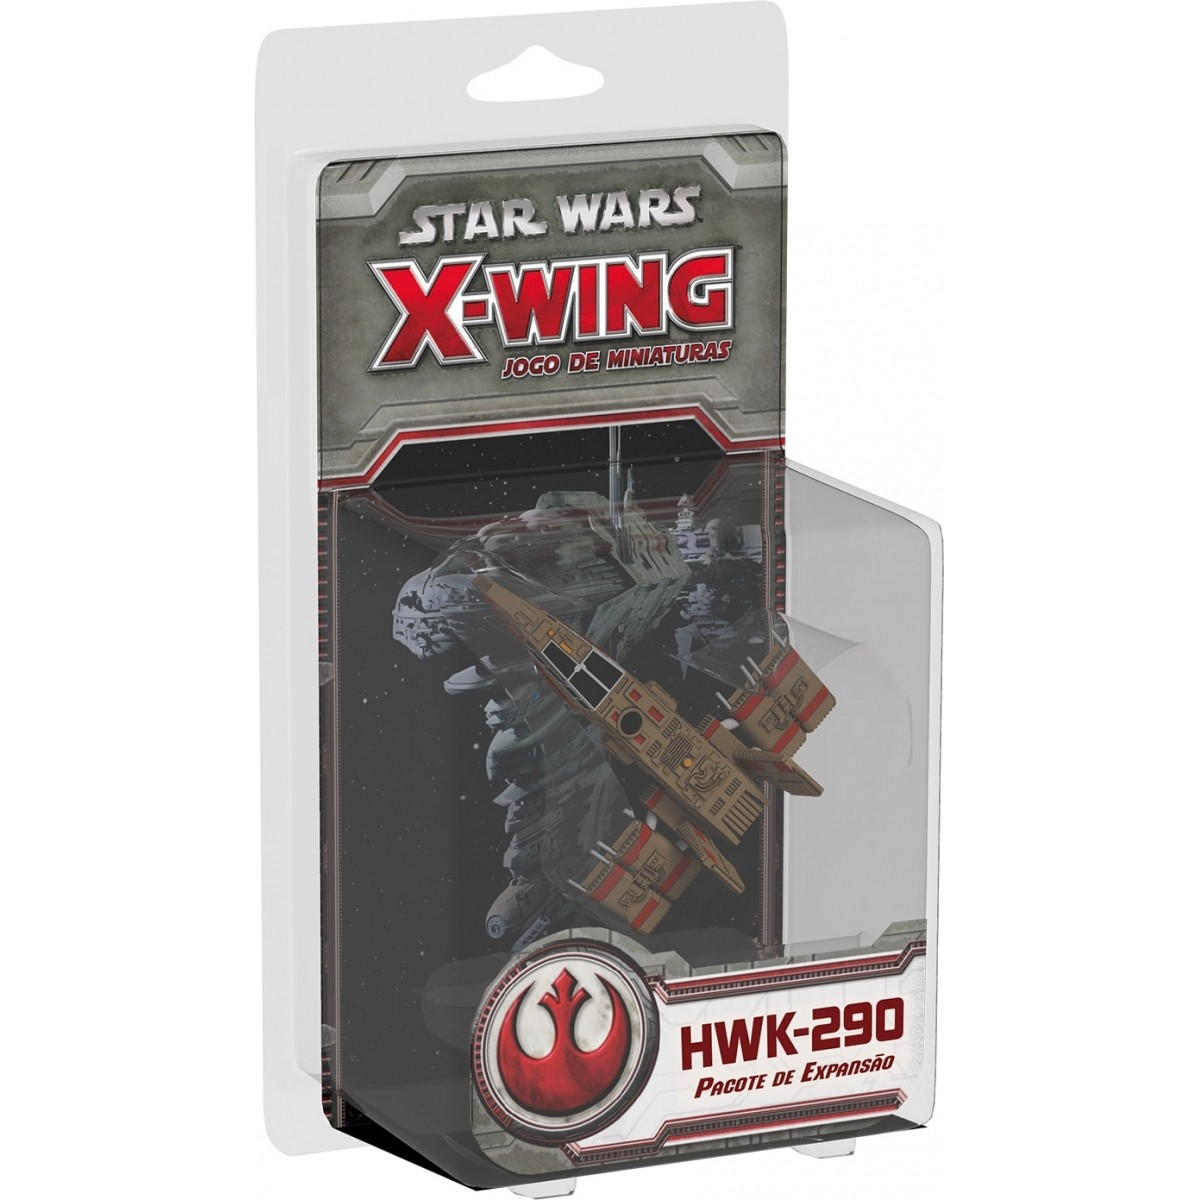 Star Wars X Wing HWK-290 Galapagos SWX012  - Place Games